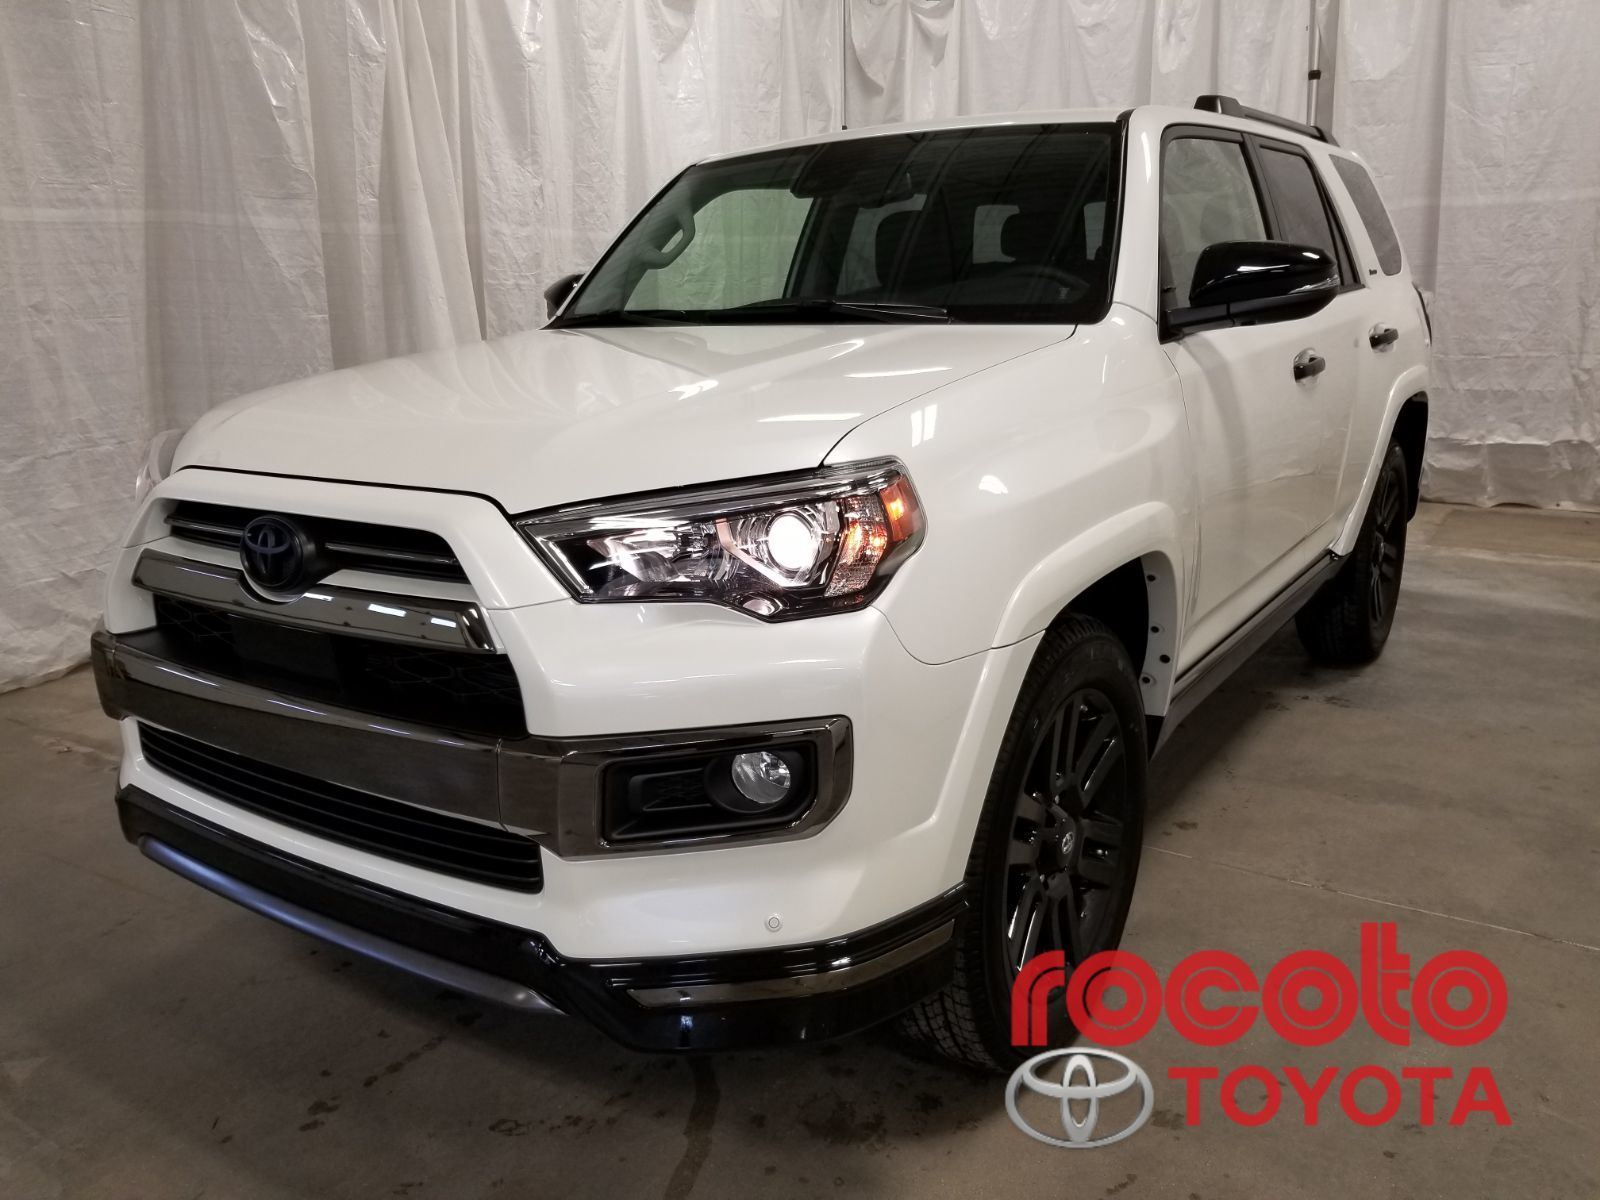 Rocoto Toyota New 2020 4runner Limited Nightshade 00275 For Sale In Chicoutimi